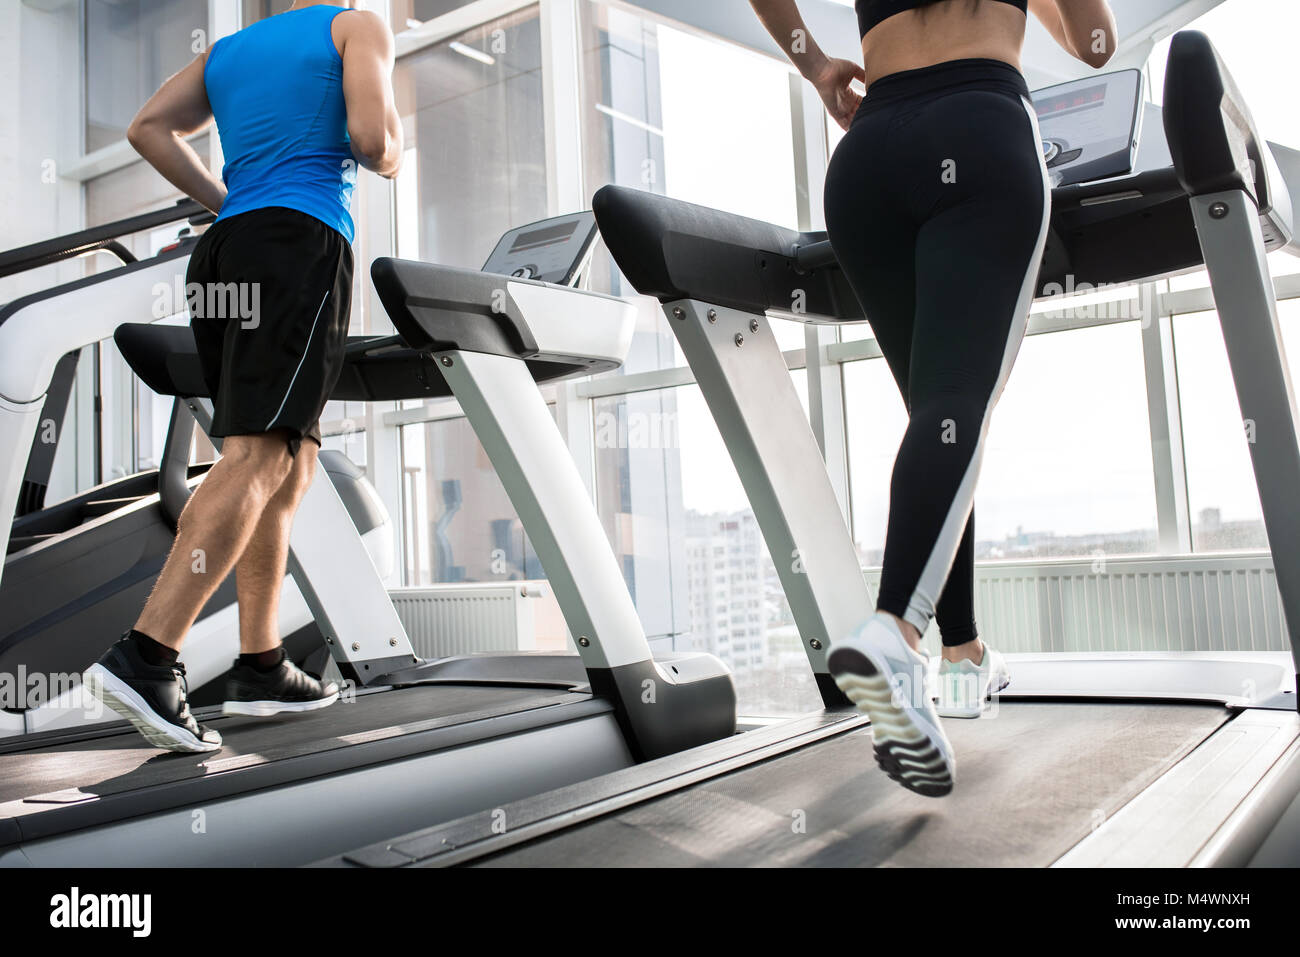 Mid-section back view of two fit young people, man and woman, running on treadmills facing windows in modern gym, - Stock Image